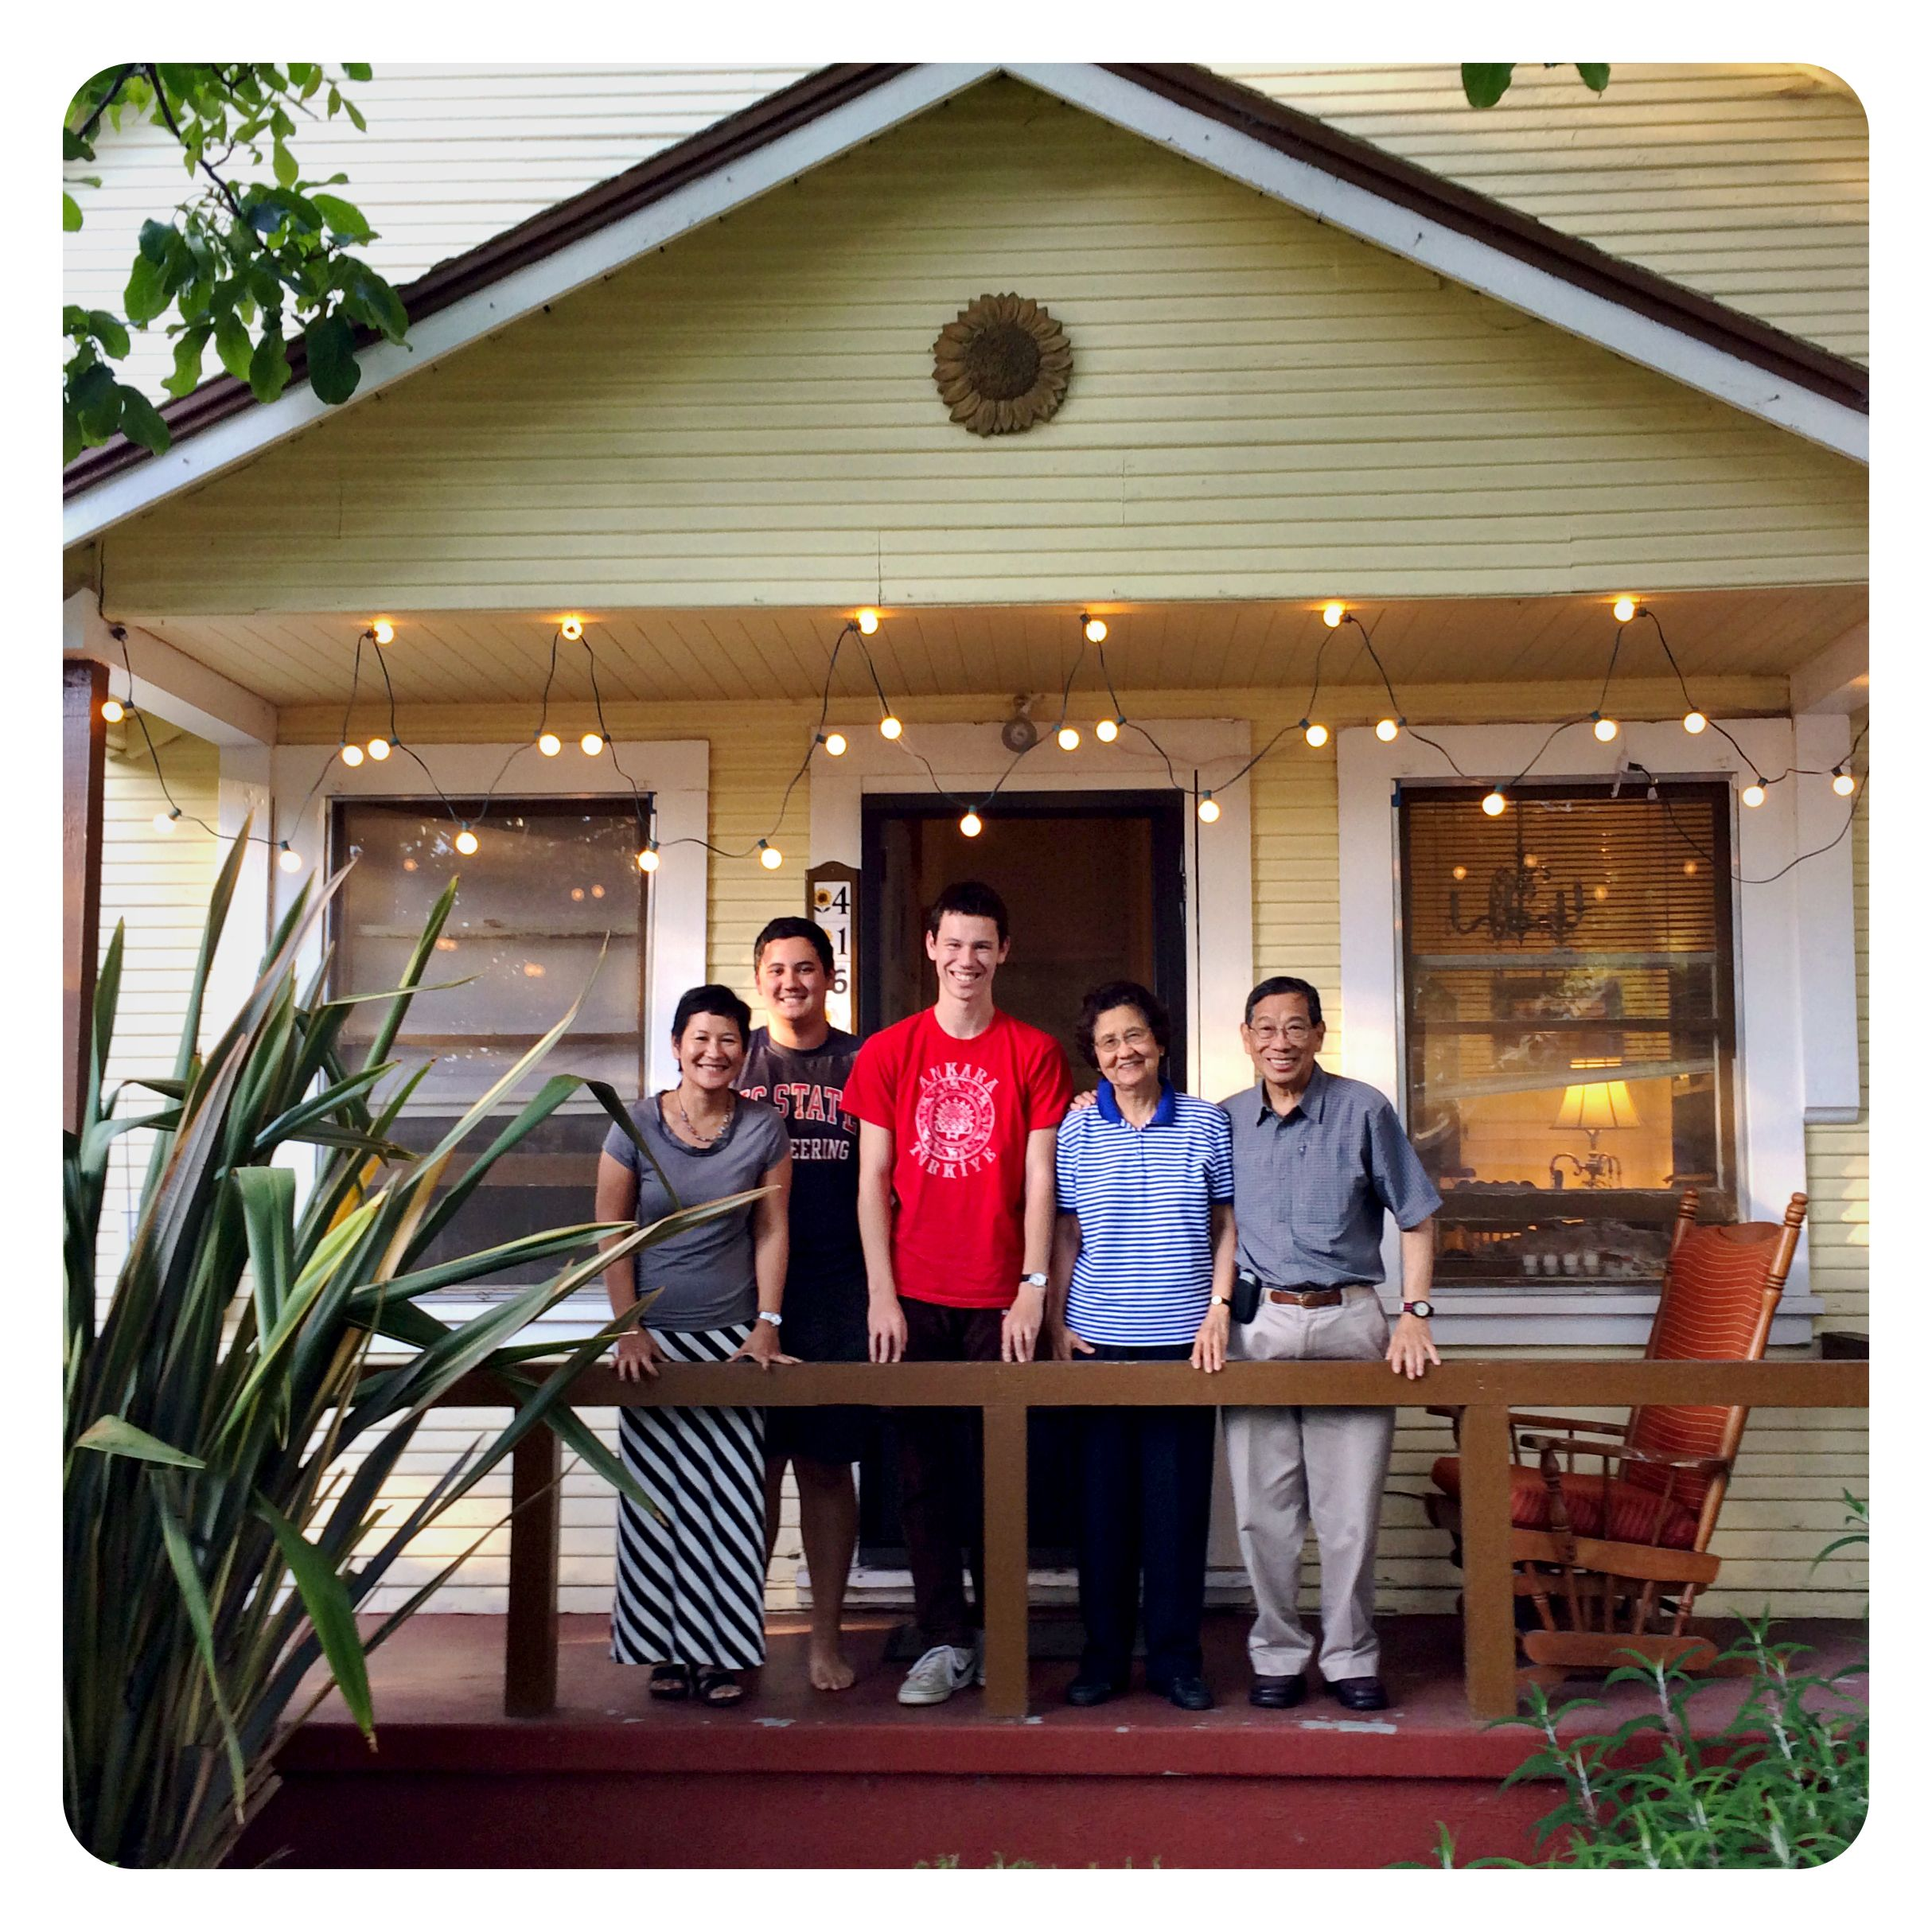 We rented a house in Mountain View, California, and it came with a social life.